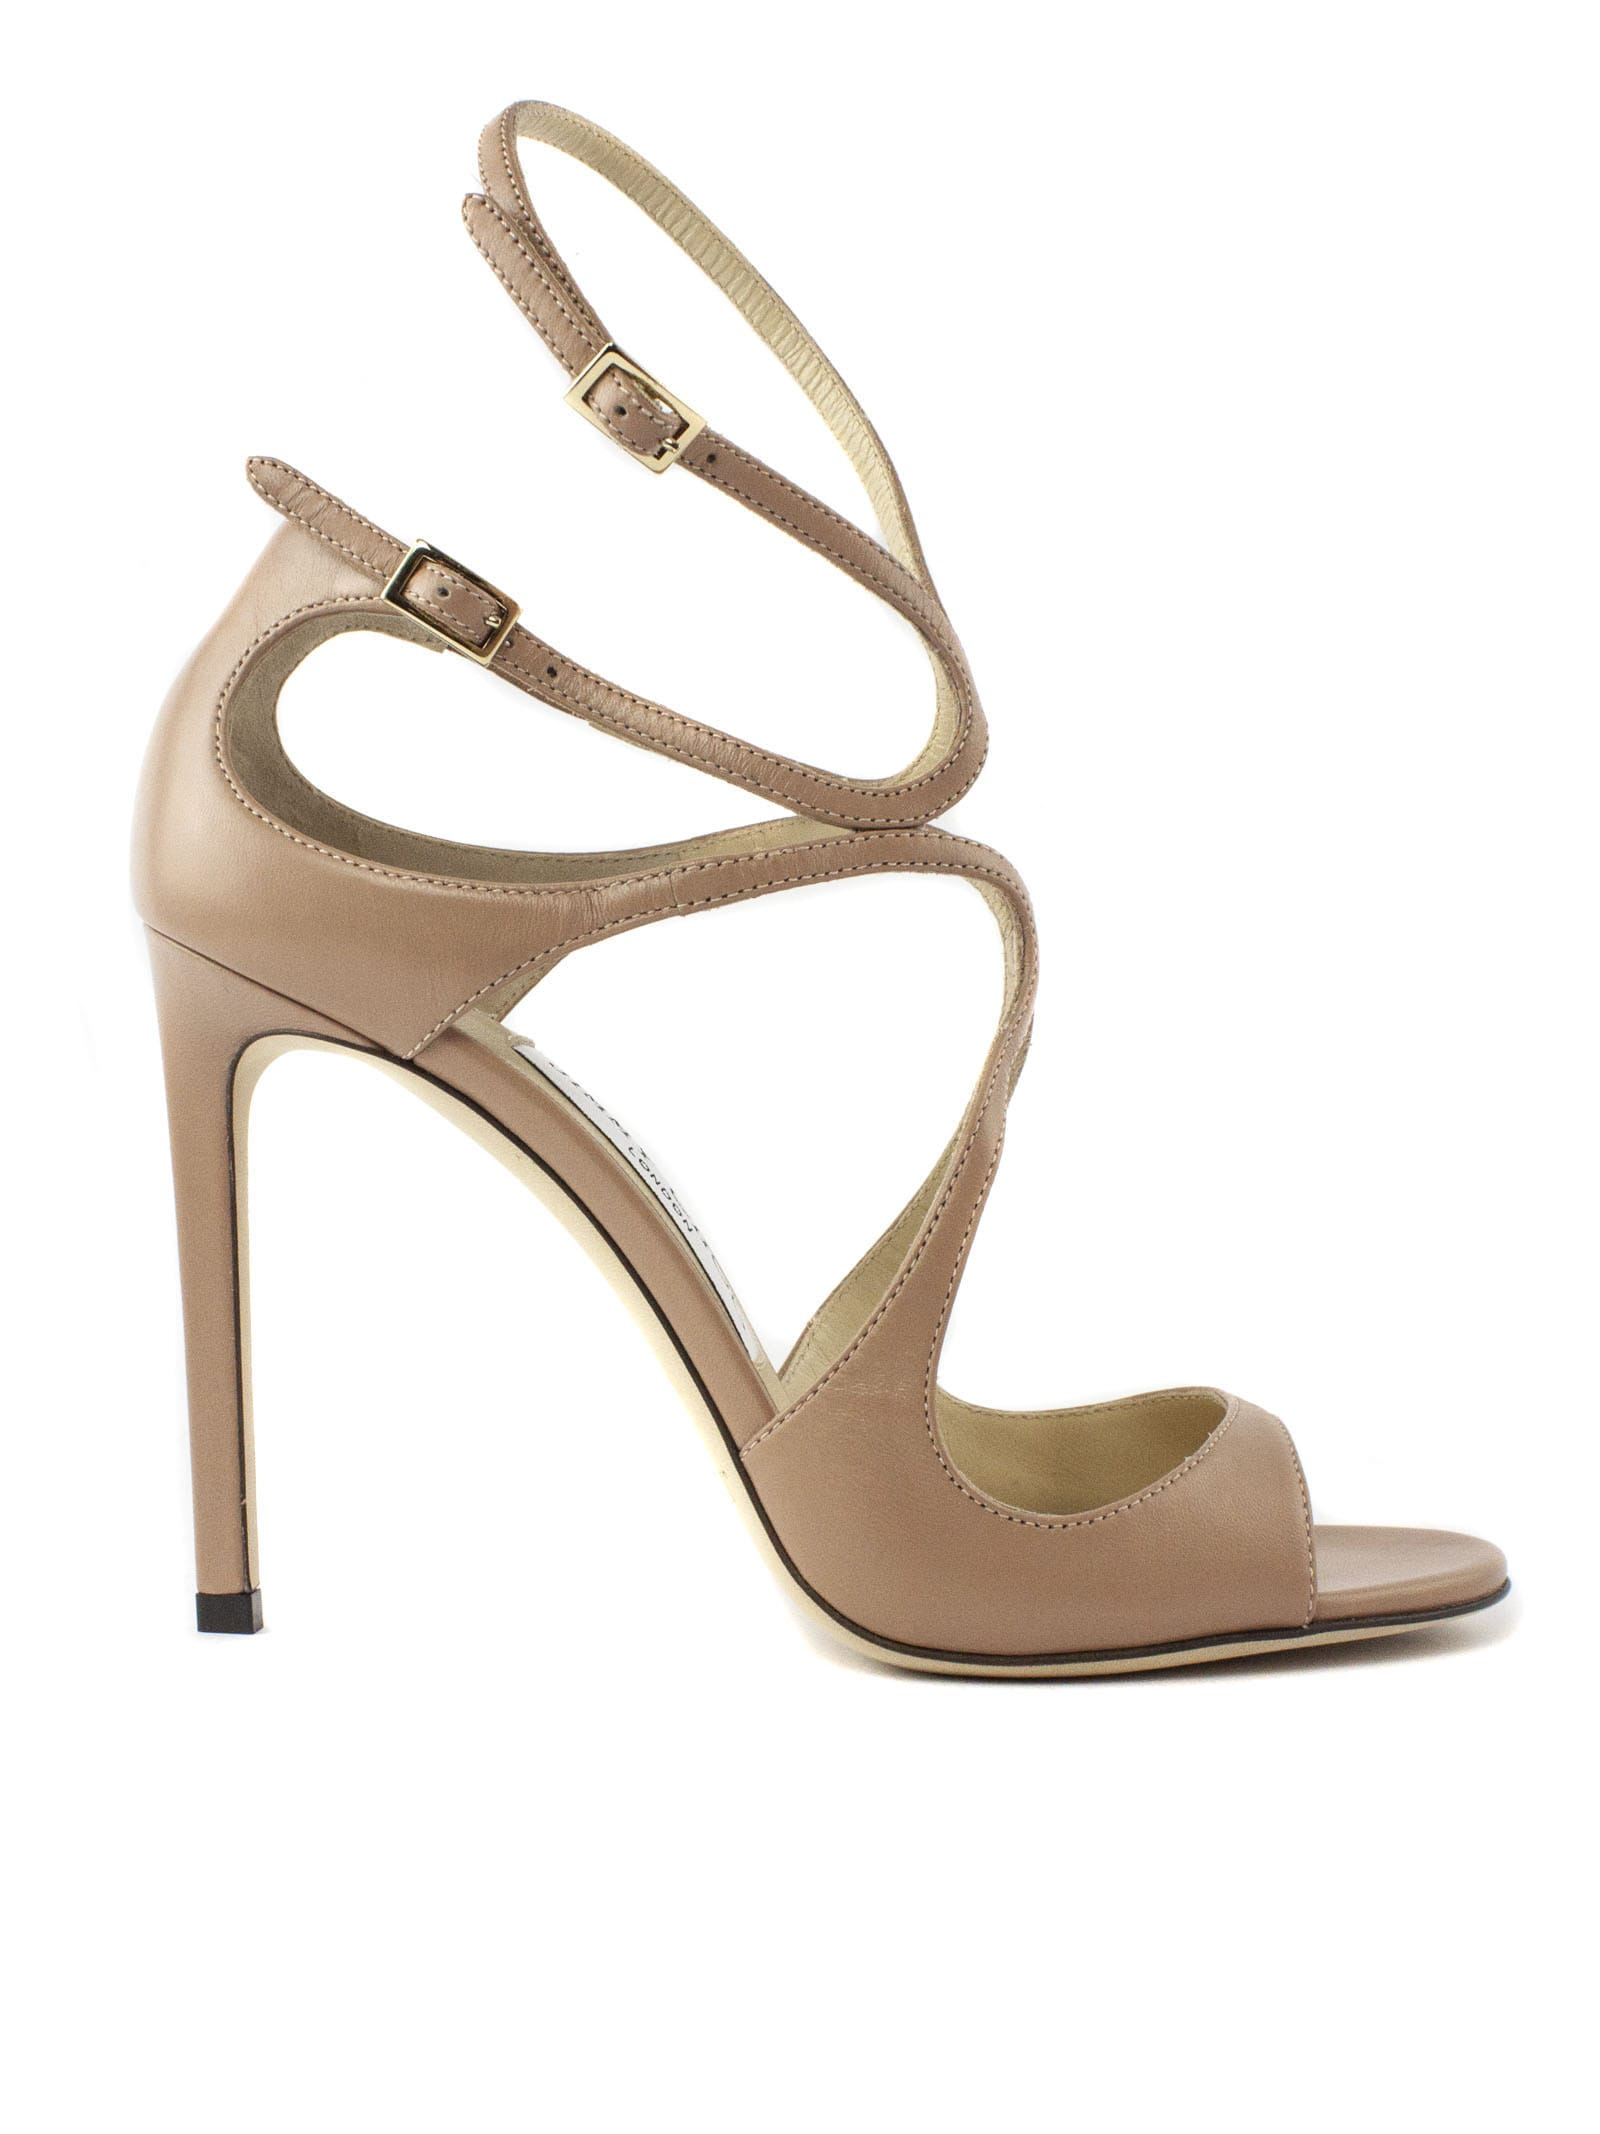 Buy Jimmy Choo Ballet-pink Leather Sandal online, shop Jimmy Choo shoes with free shipping